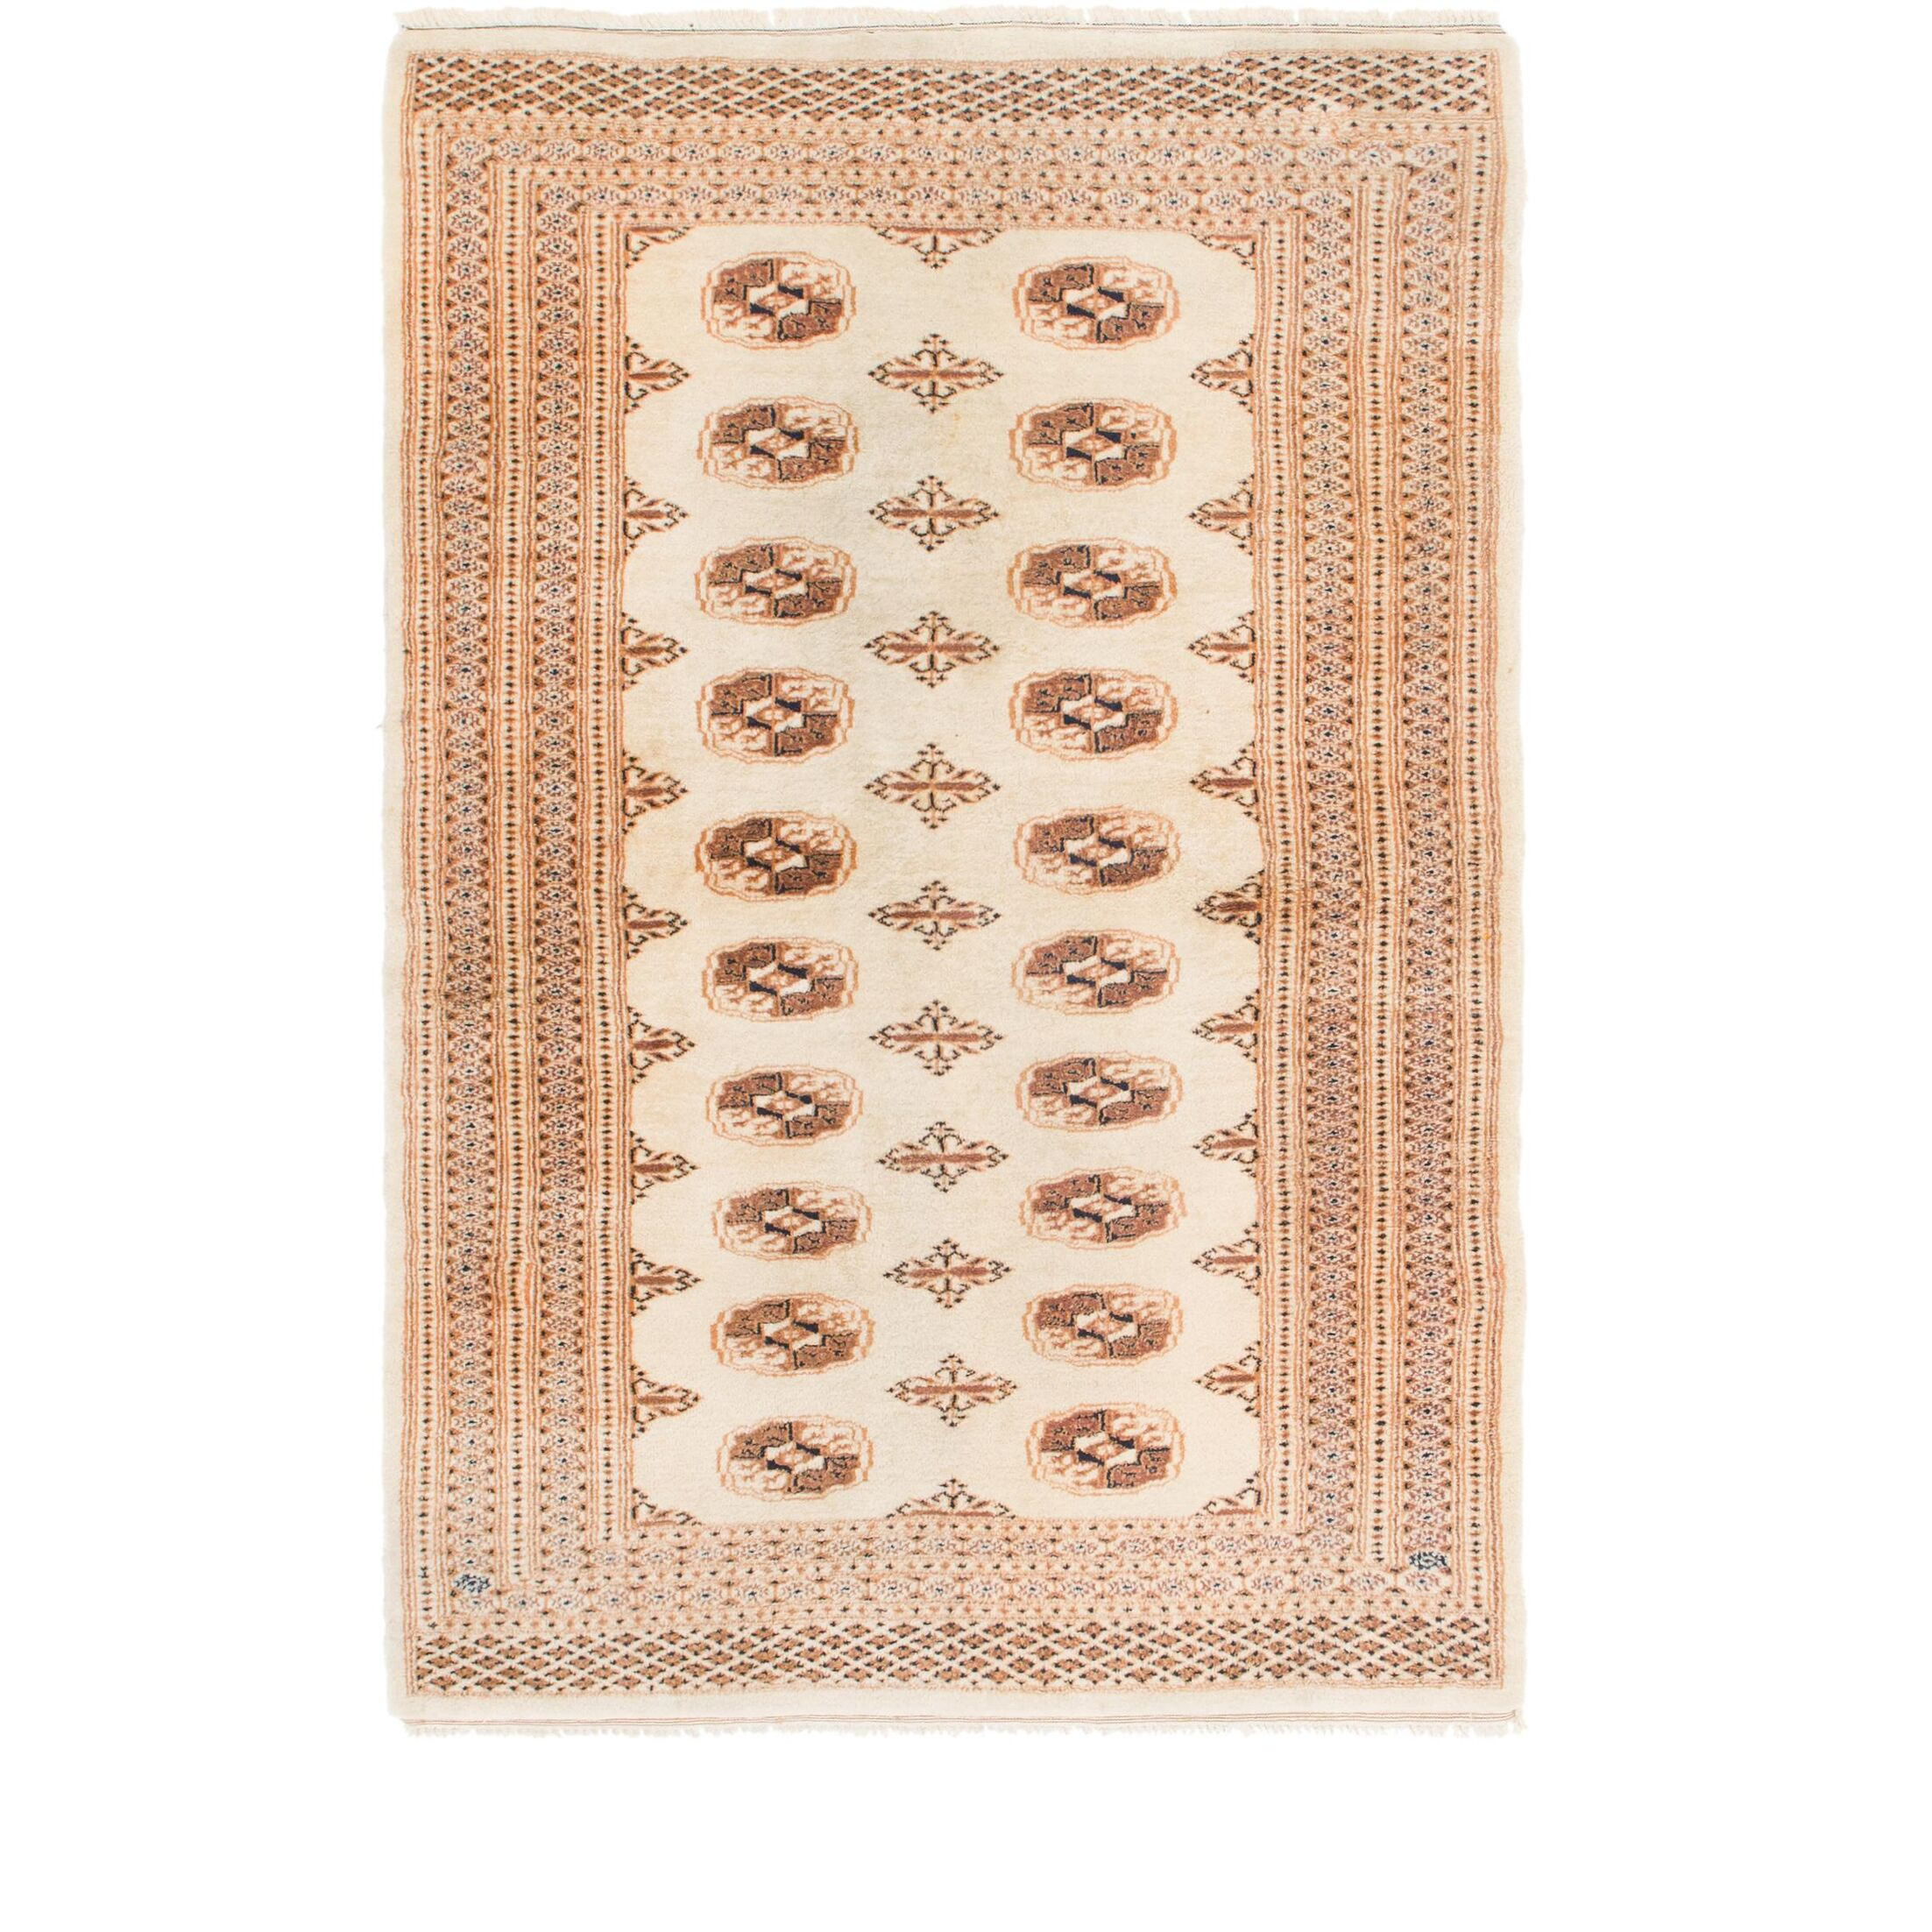 One-of-a-Kind Tekke Hand-Knotted Wool Cream Area Rug